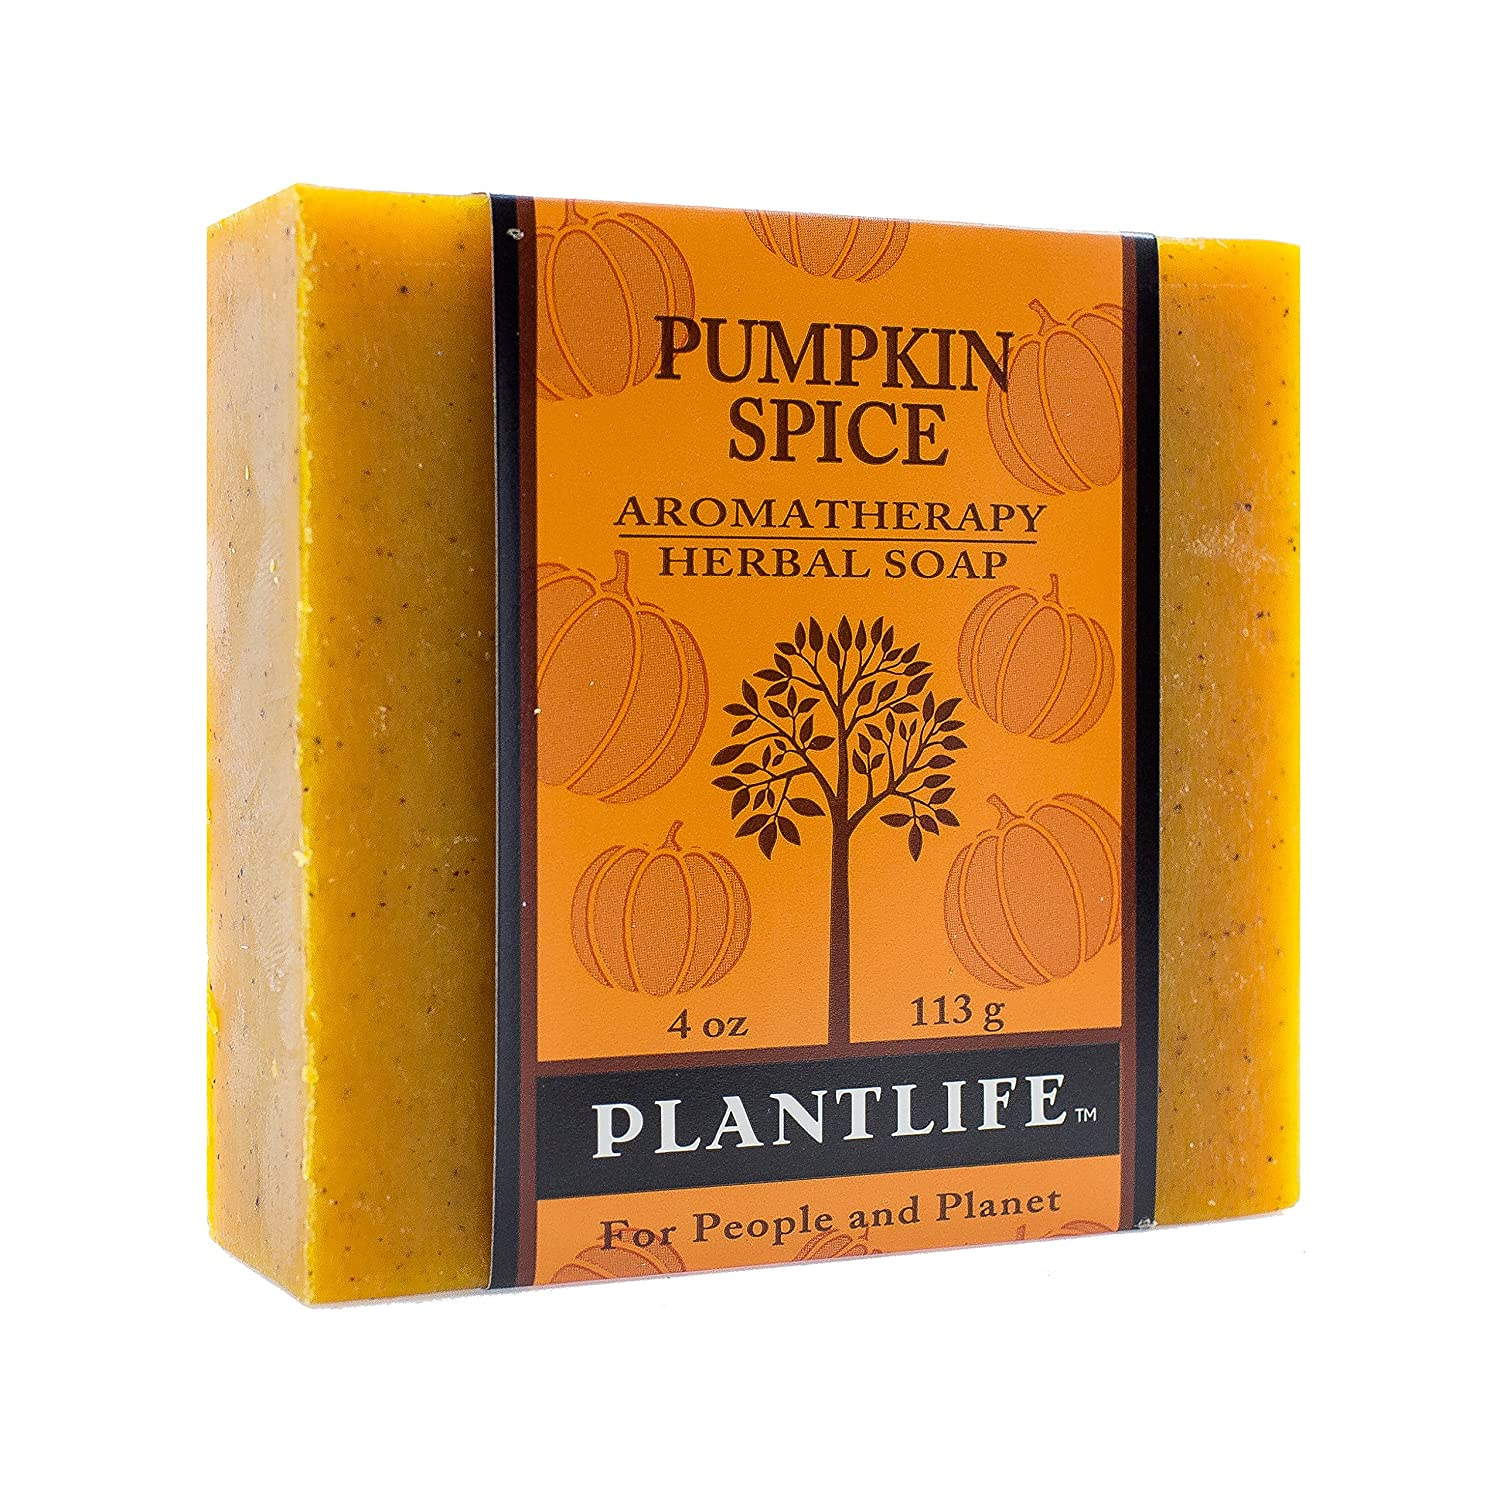 Plantlife Pumpkin Spice Pure & Natural Aromatherapy Herbal Soap